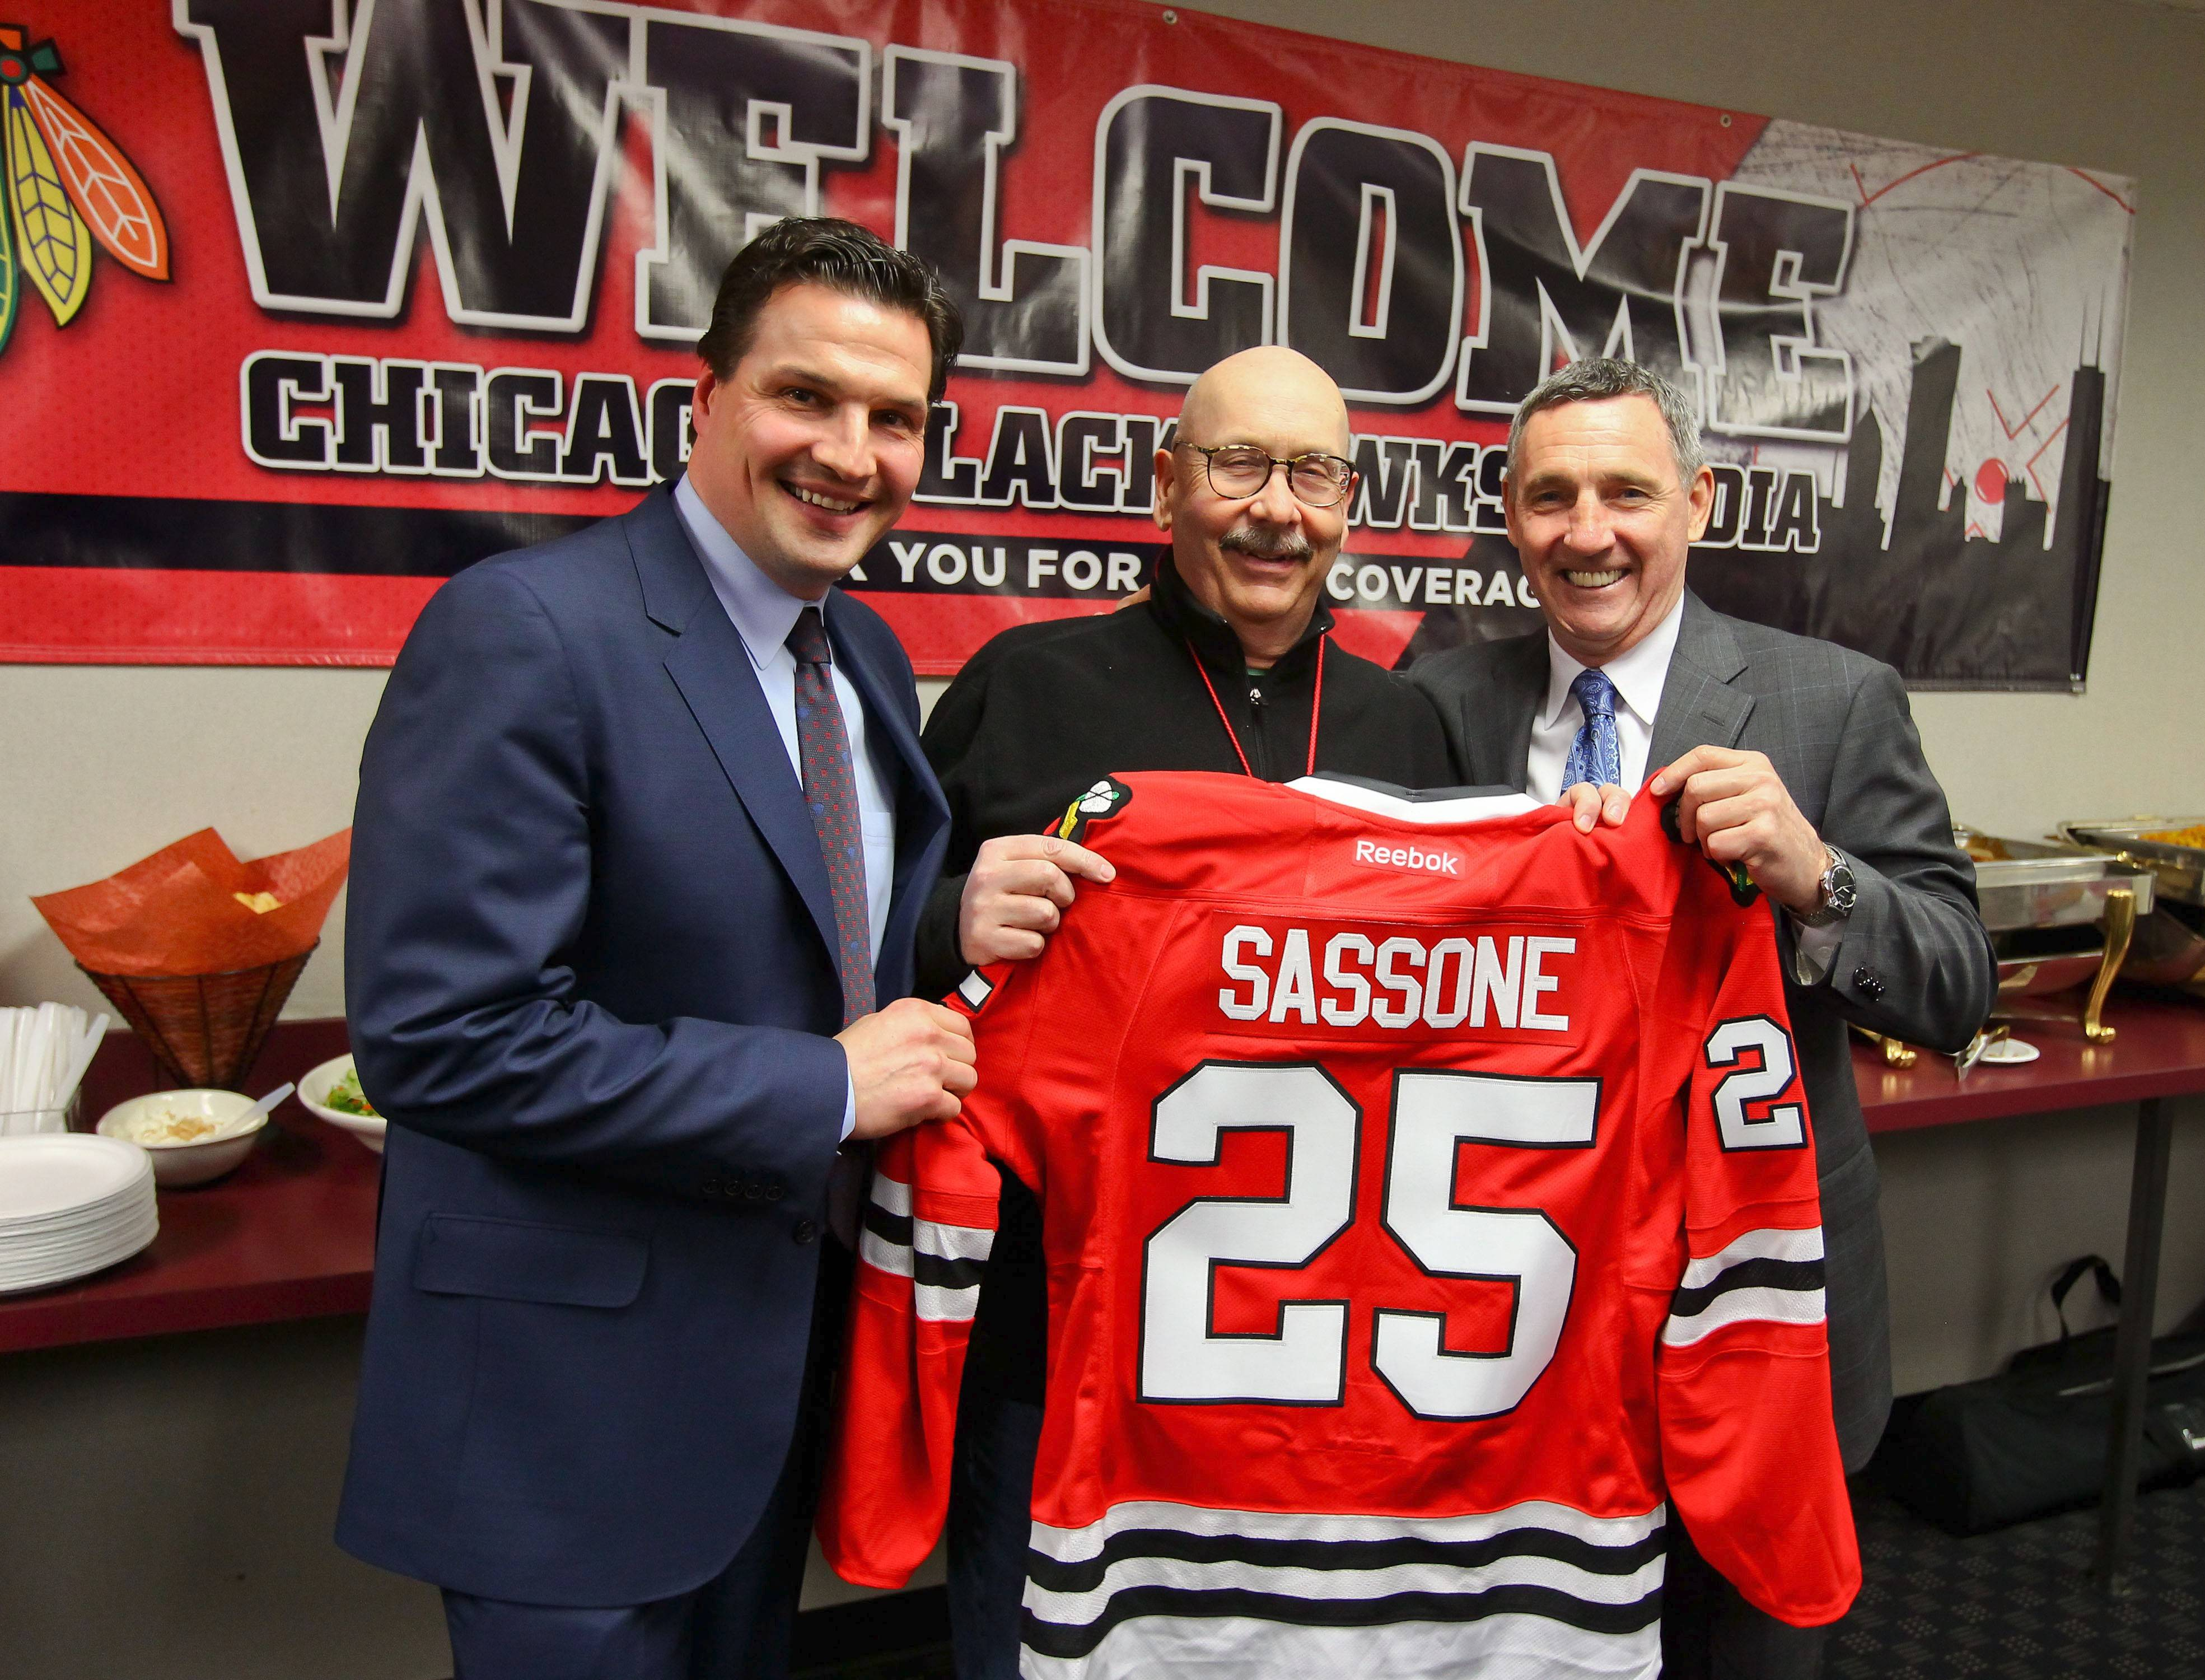 In honor of his 25 years of covering the team, Tim Sassone of the Daily Herald was presented with a Blackhawks jersey in 2013 by broadcaster Eddie Olczyk, left, and hockey legend Denis Savard.